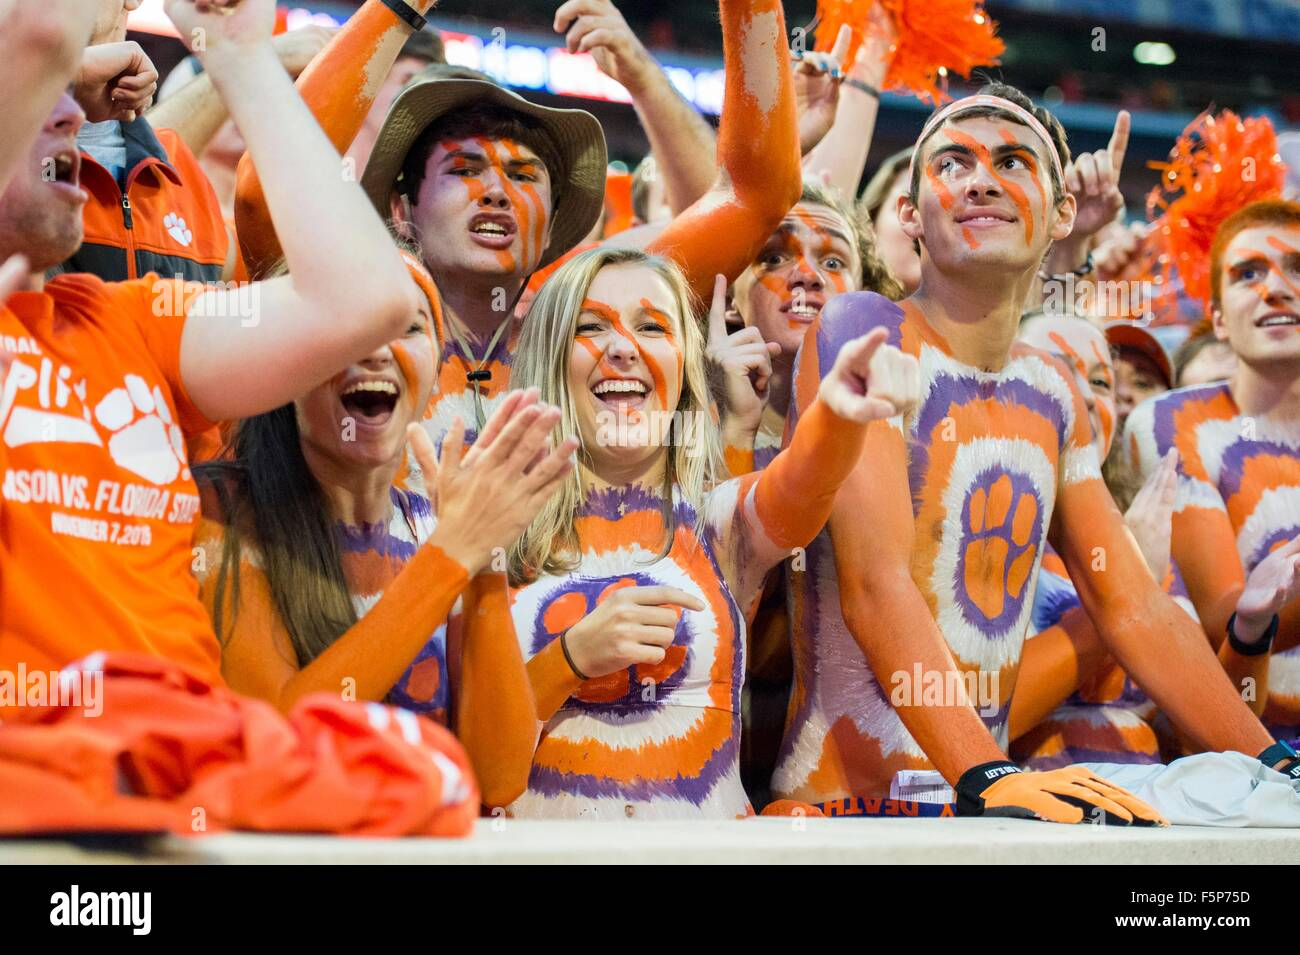 Clemson Student Fans During The Ncaa College Football Game Between